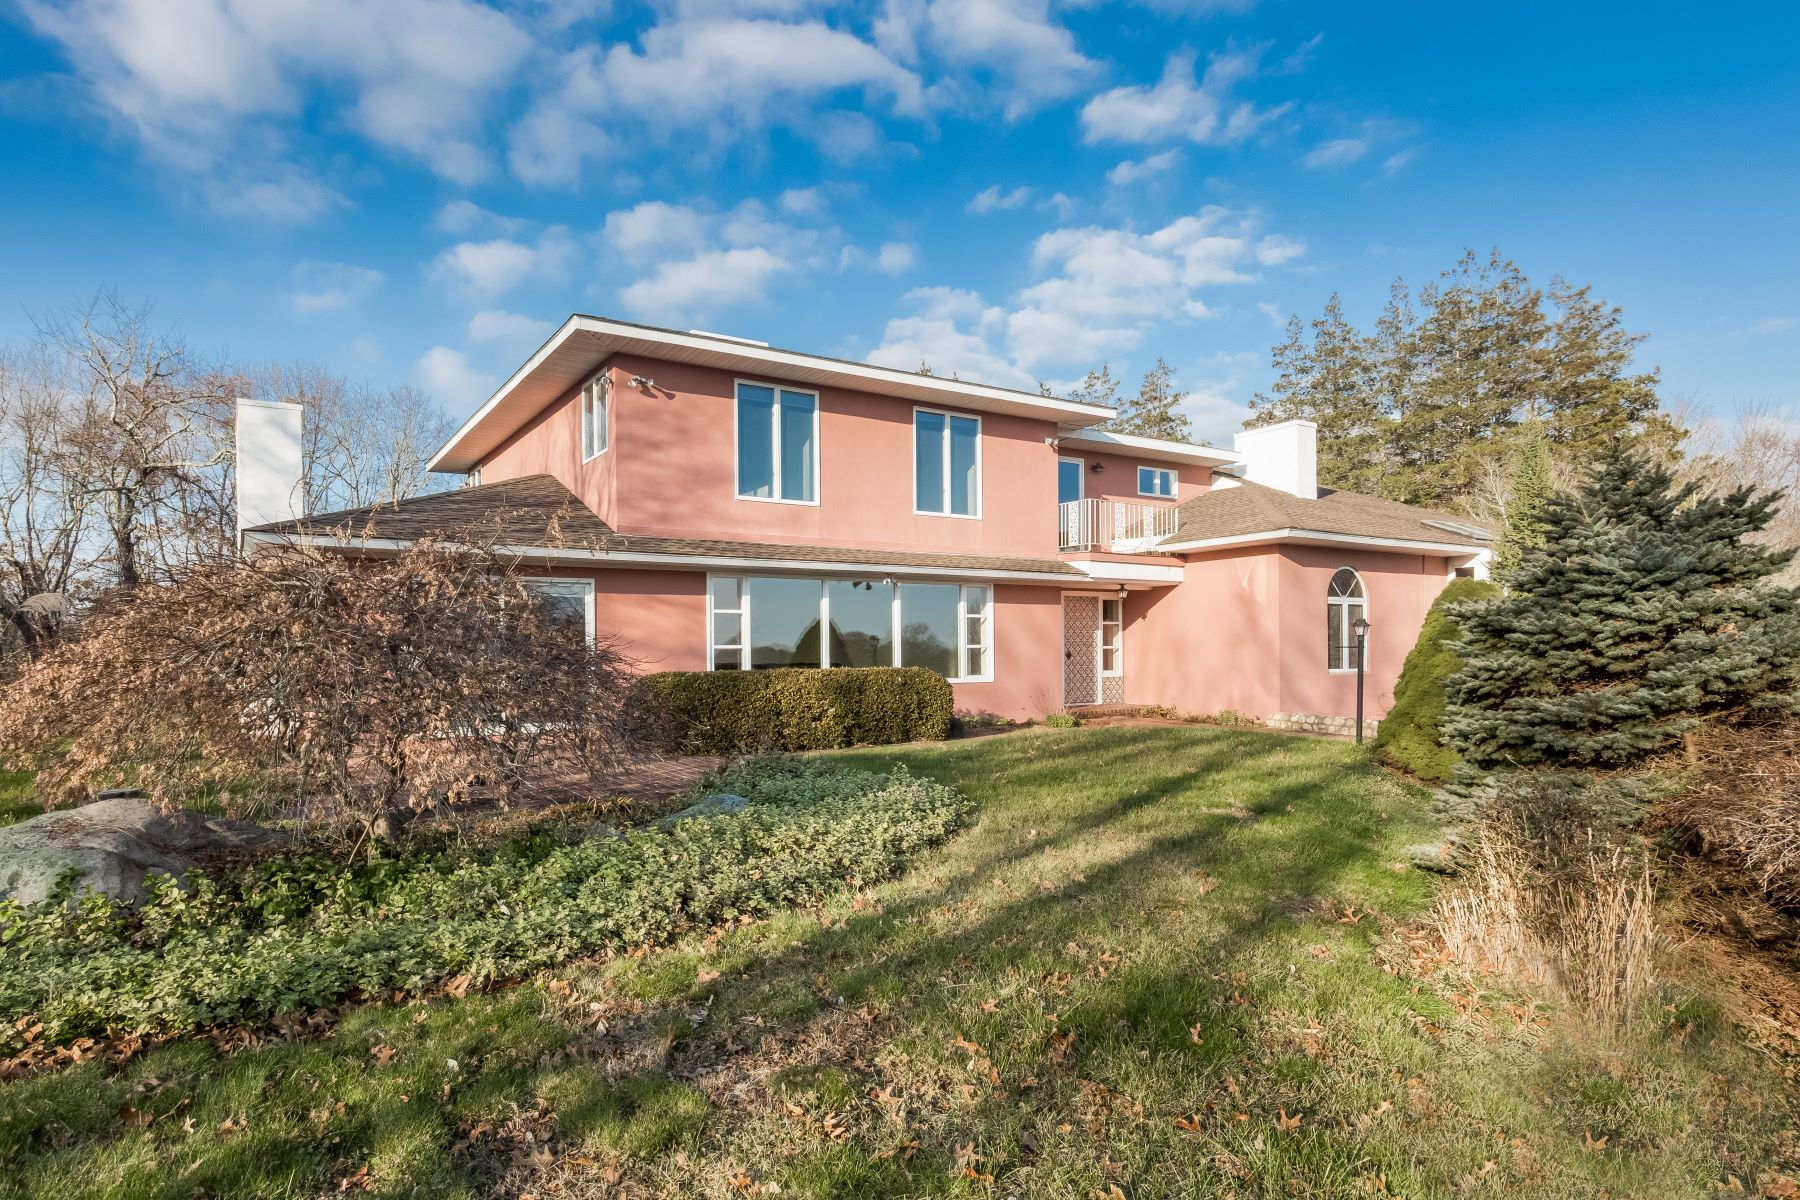 Single Family Home for Sale at Hill Top 325 Post Rd Westerly, Rhode Island 02891 United States